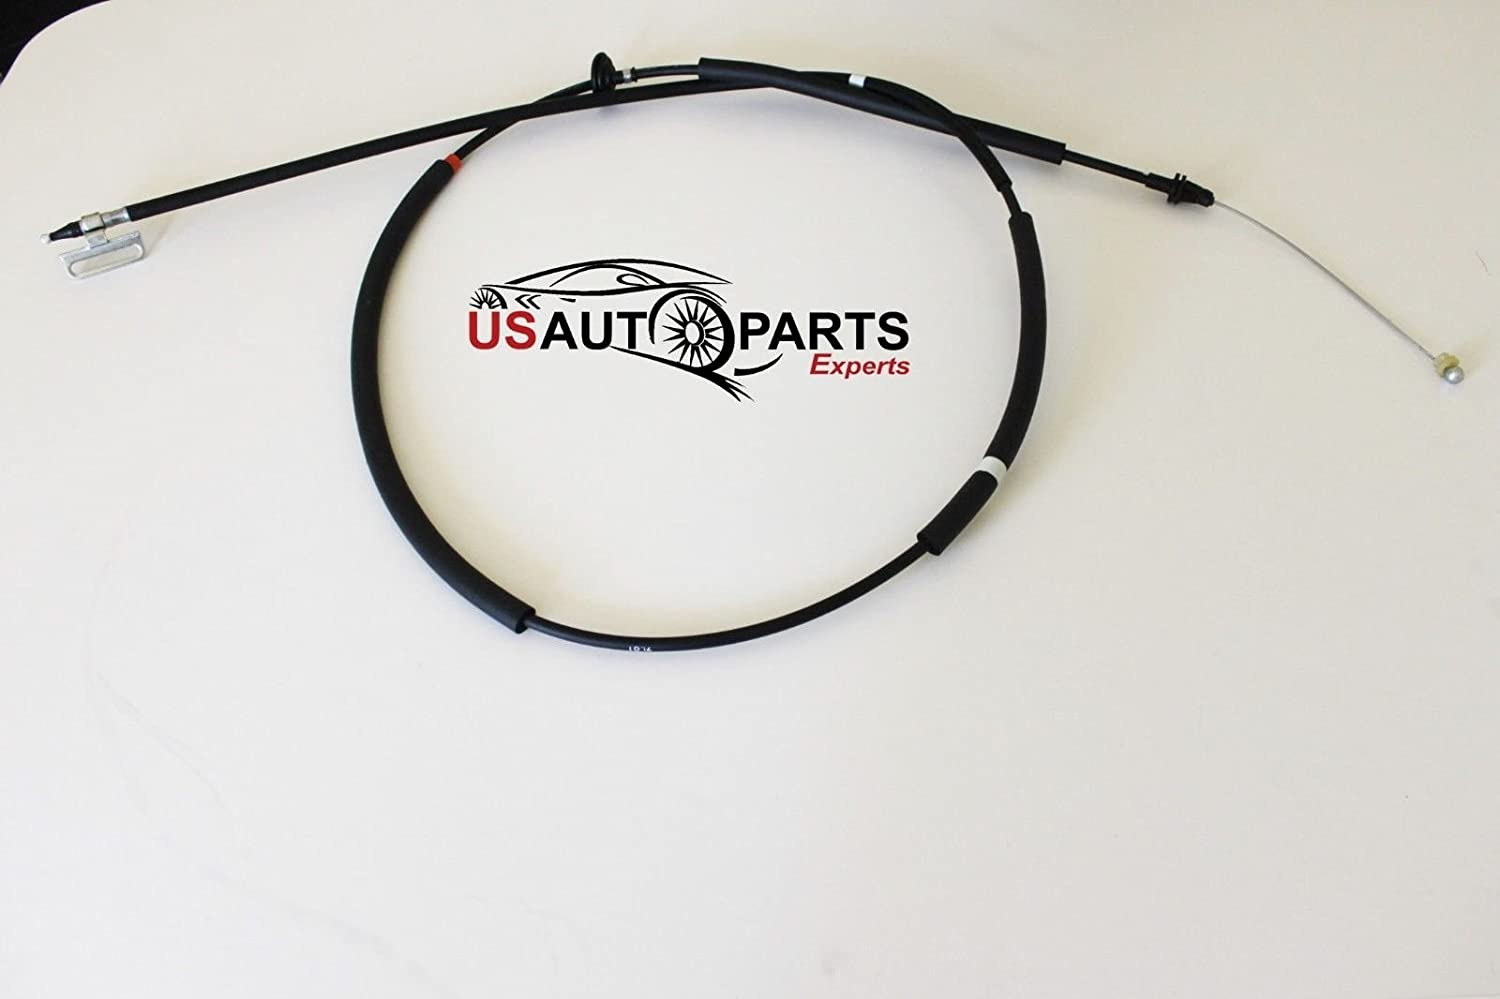 QTY1, 8-97122-493-4 Accelerator Cable Engine Control For ISUZU Gas V8 5.7L NPR NPR-HD OEM